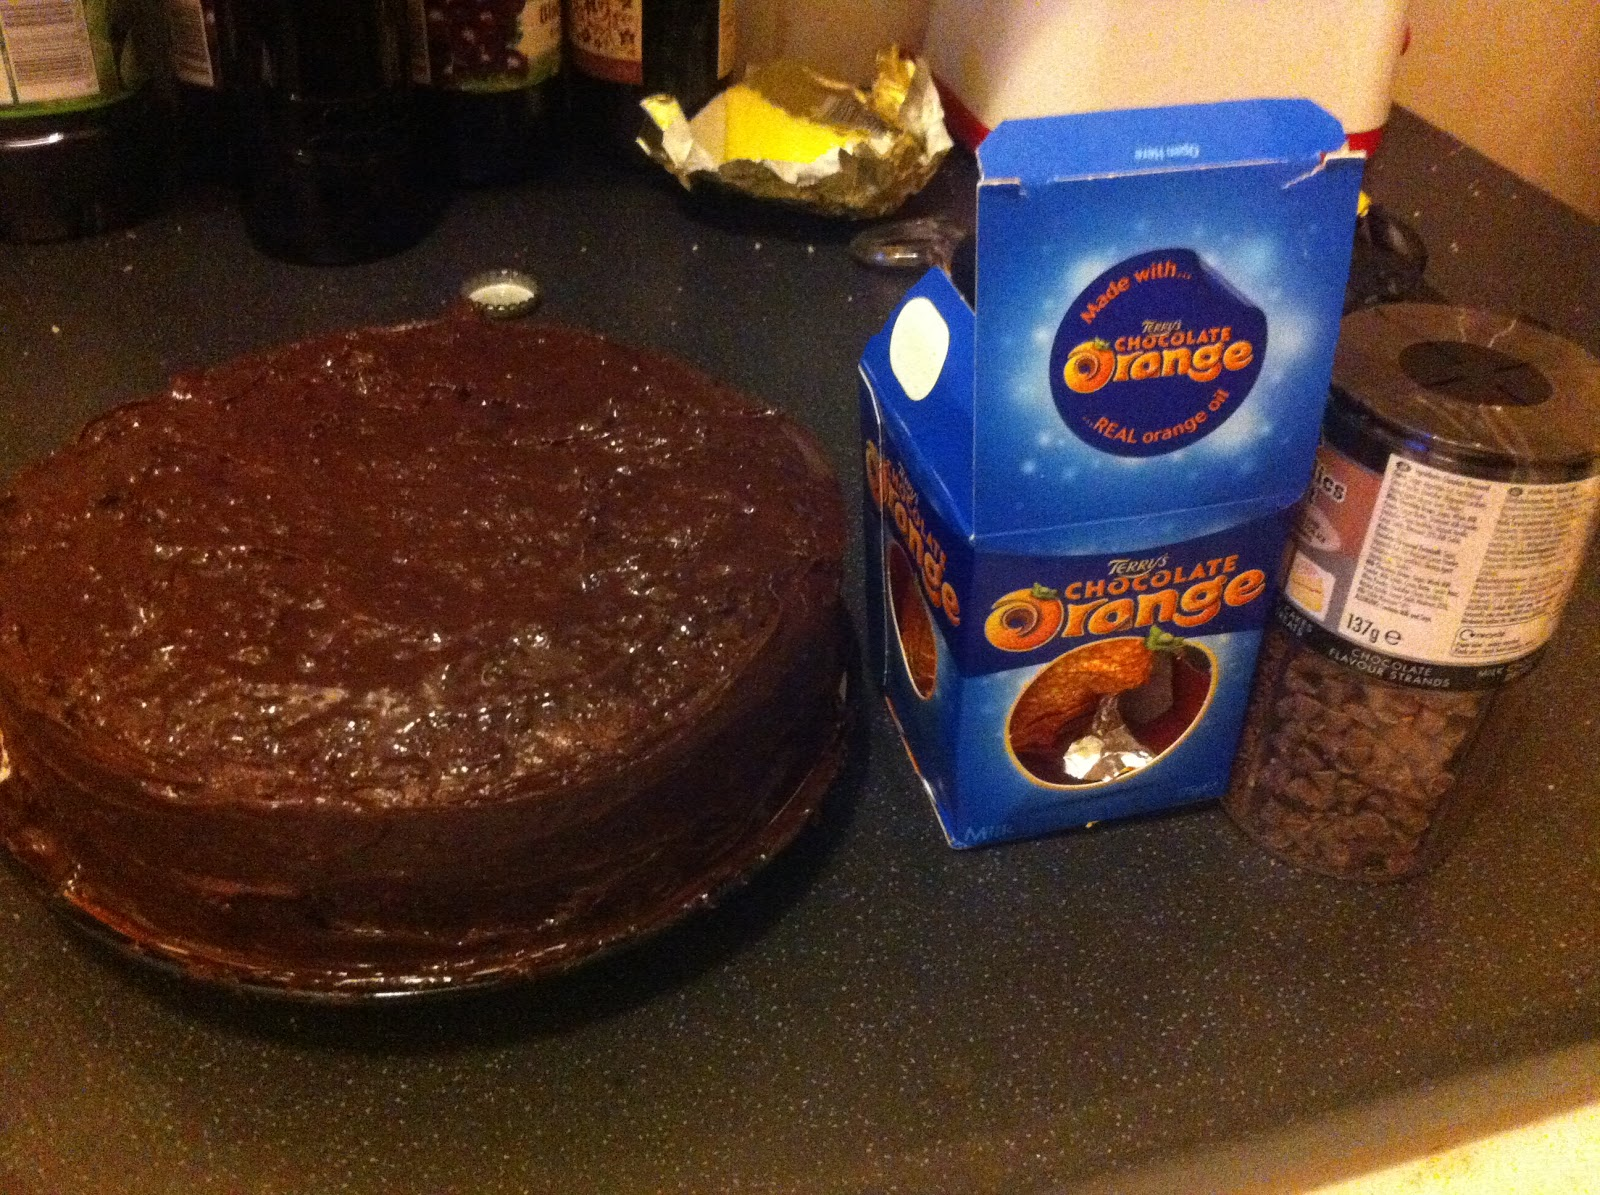 Pin Poop Covered Cake Funny Pictures Cake On Pinterest